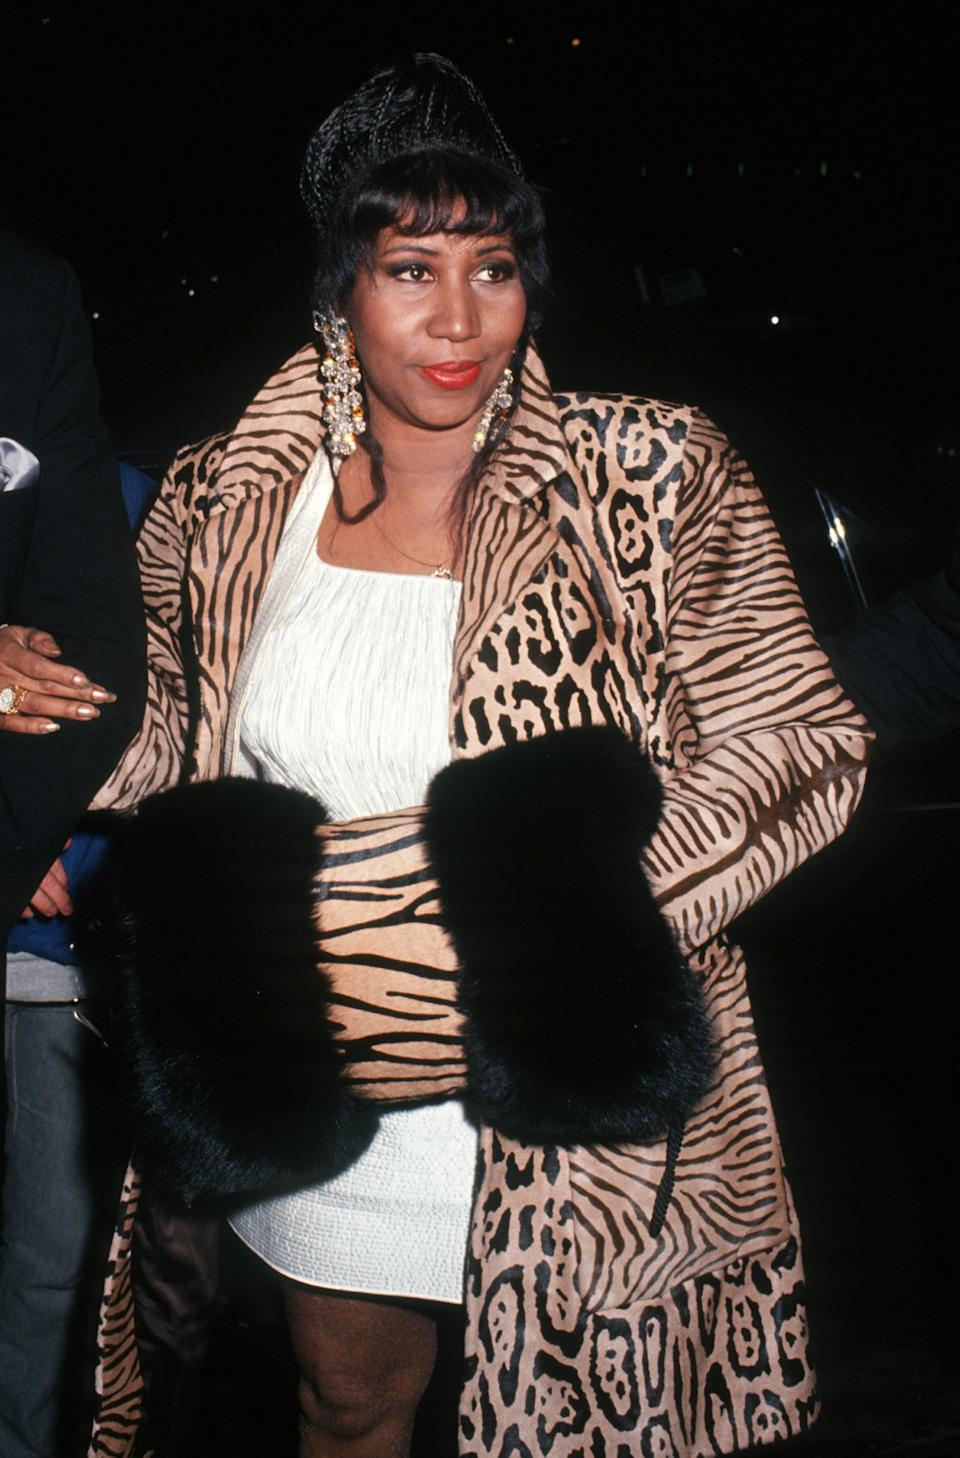 <p>Aretha Franklin wears a white mini dress underneath a leopard print coat with black fur trimmings and statement crystal earrings at the Arista Records Pre-Grammy Party. (Photo by Ron Galella, Ltd./WireImage) </p>